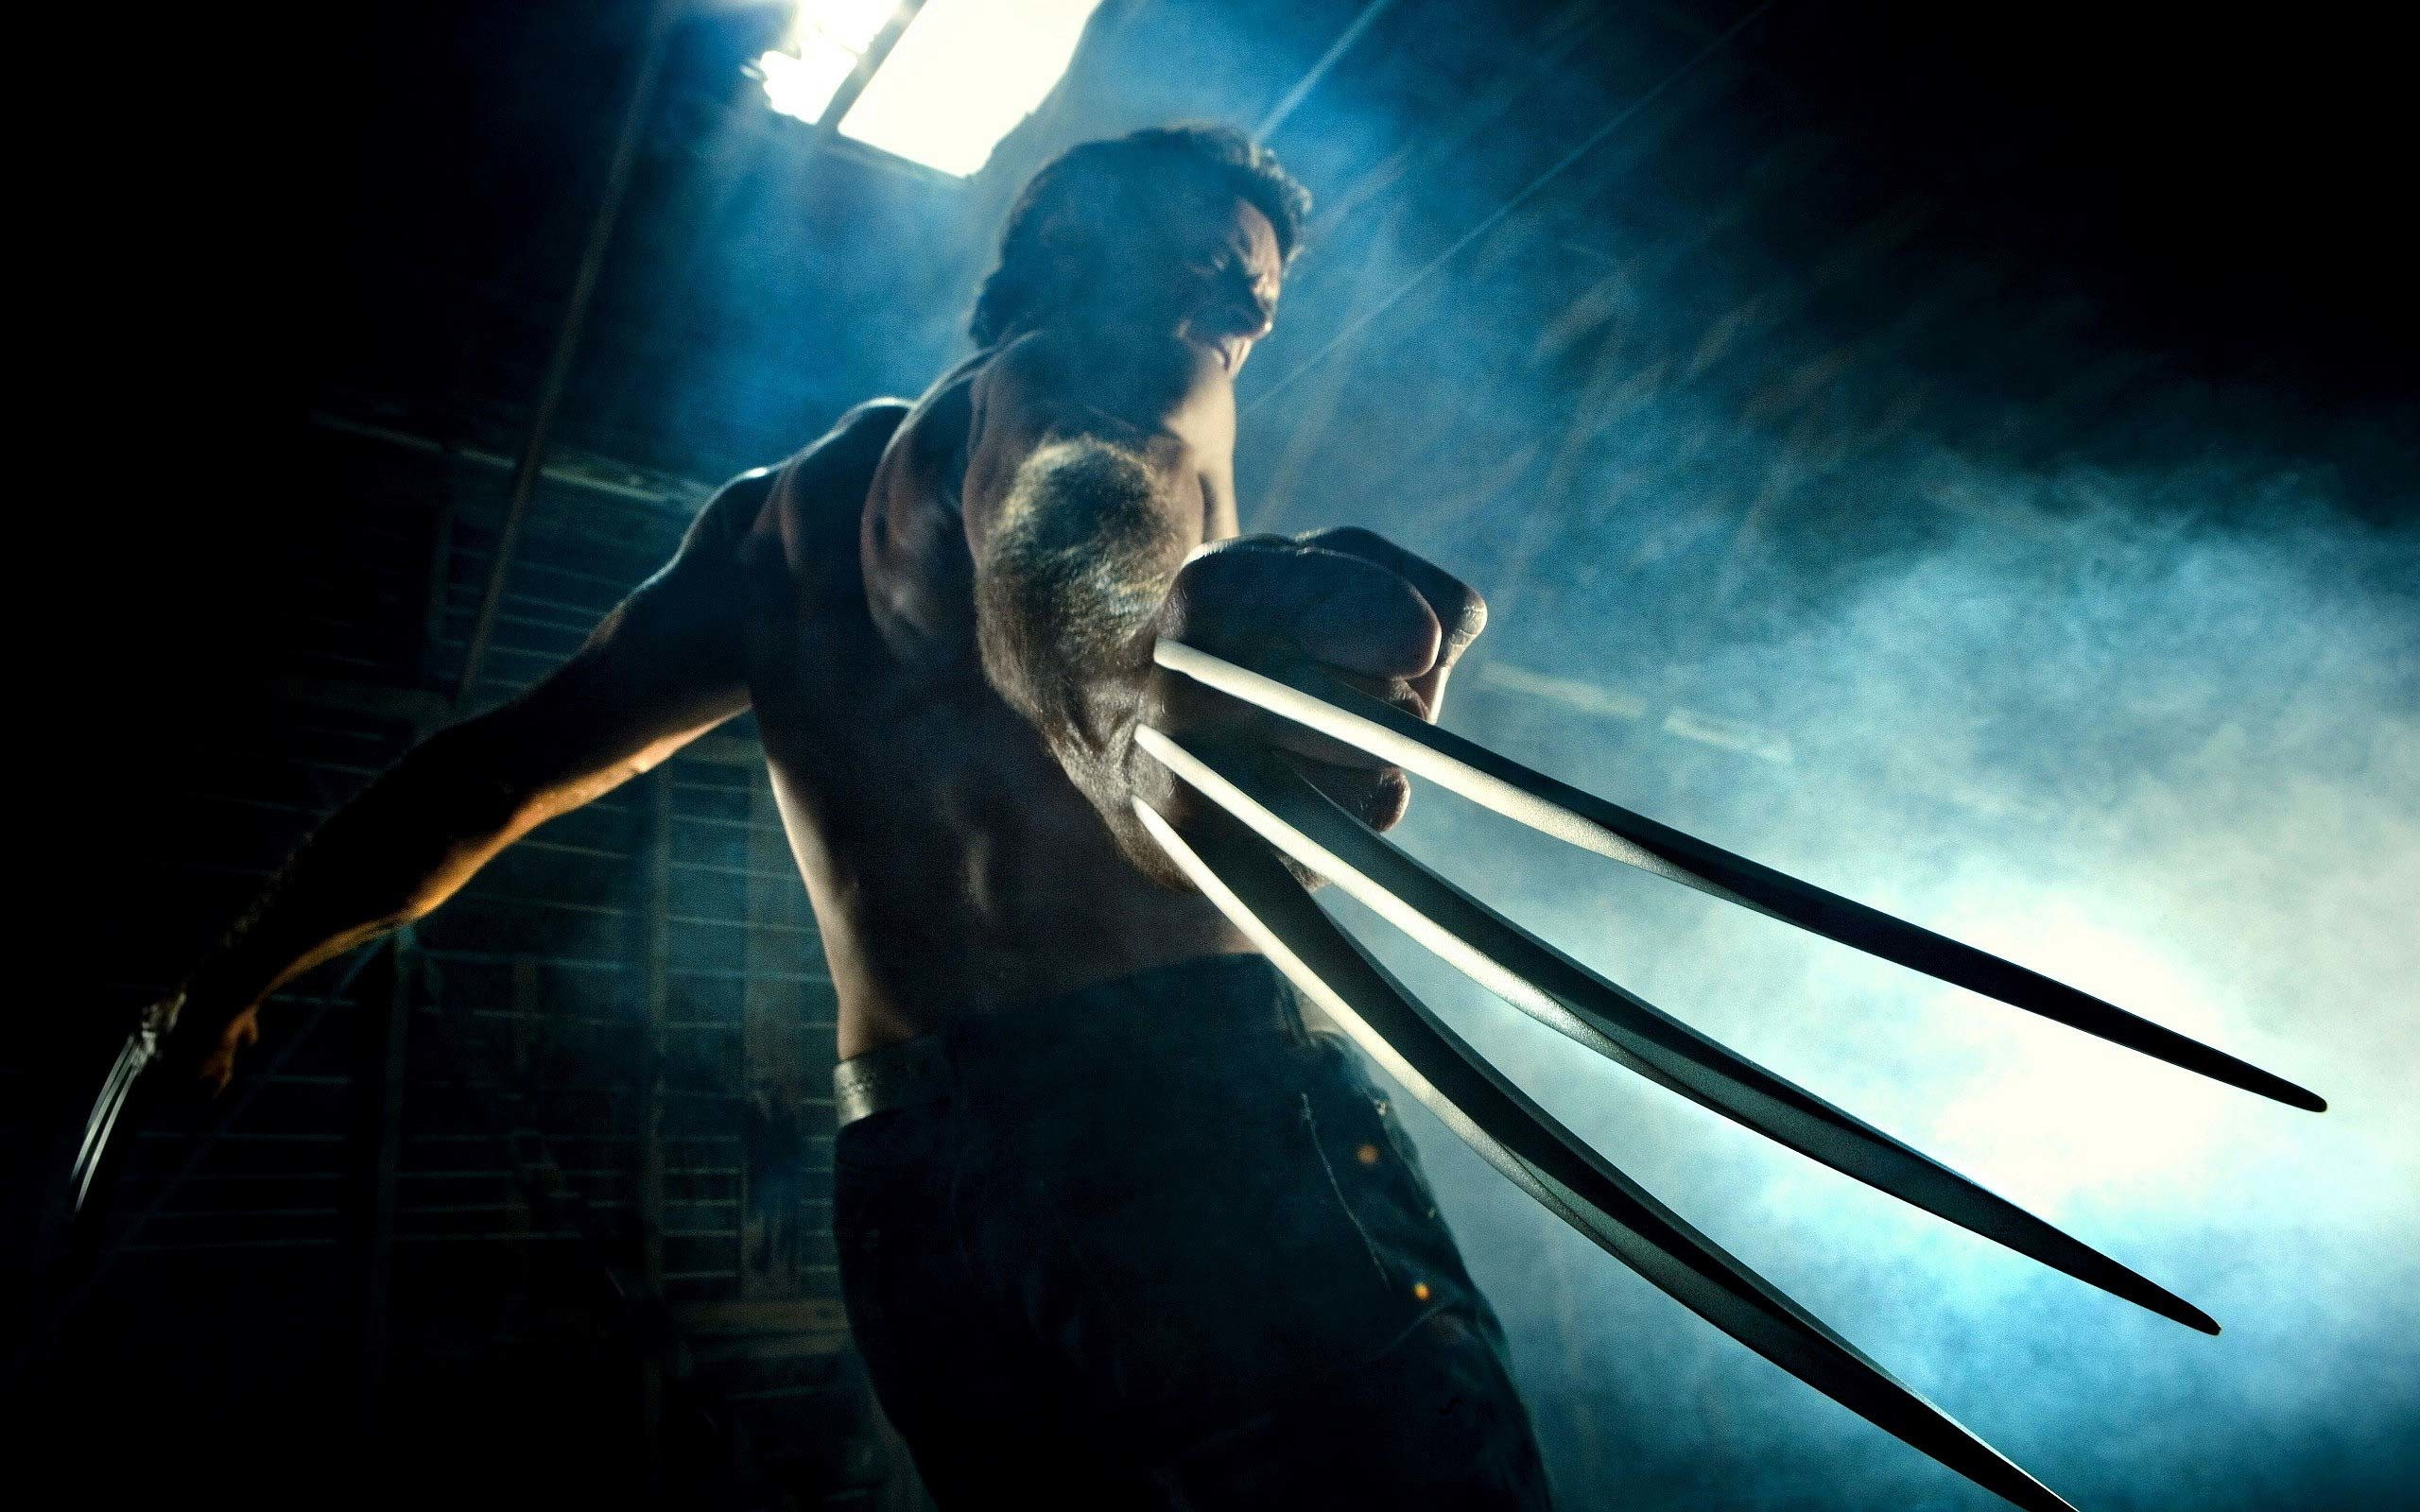 the wolverine 2018 wallpaper (57+ images)